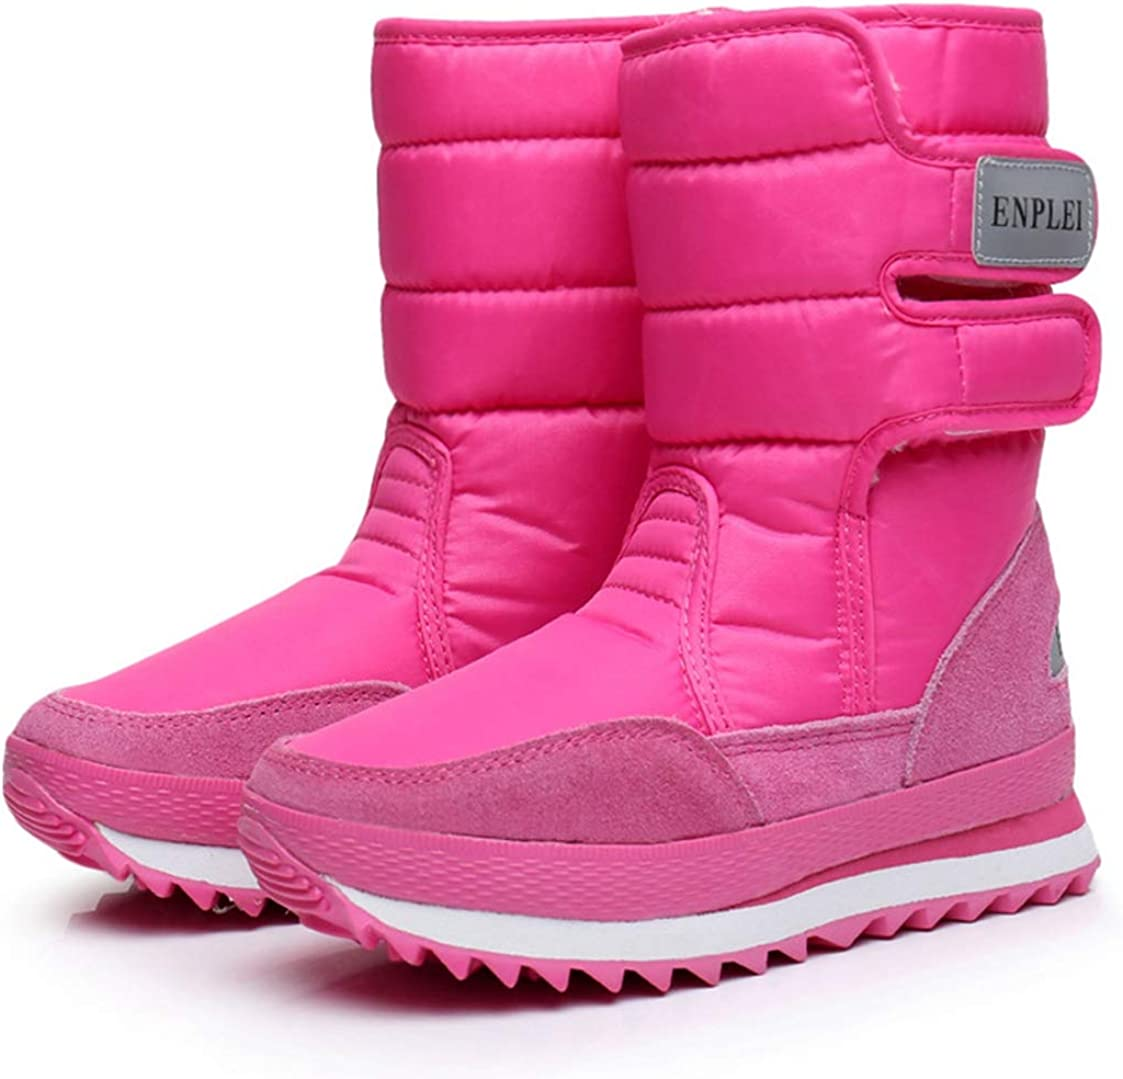 Womens Winter Snow Shoes Waterproof Mid Calf Boots Anti-slip Thermal Comfy Shoes